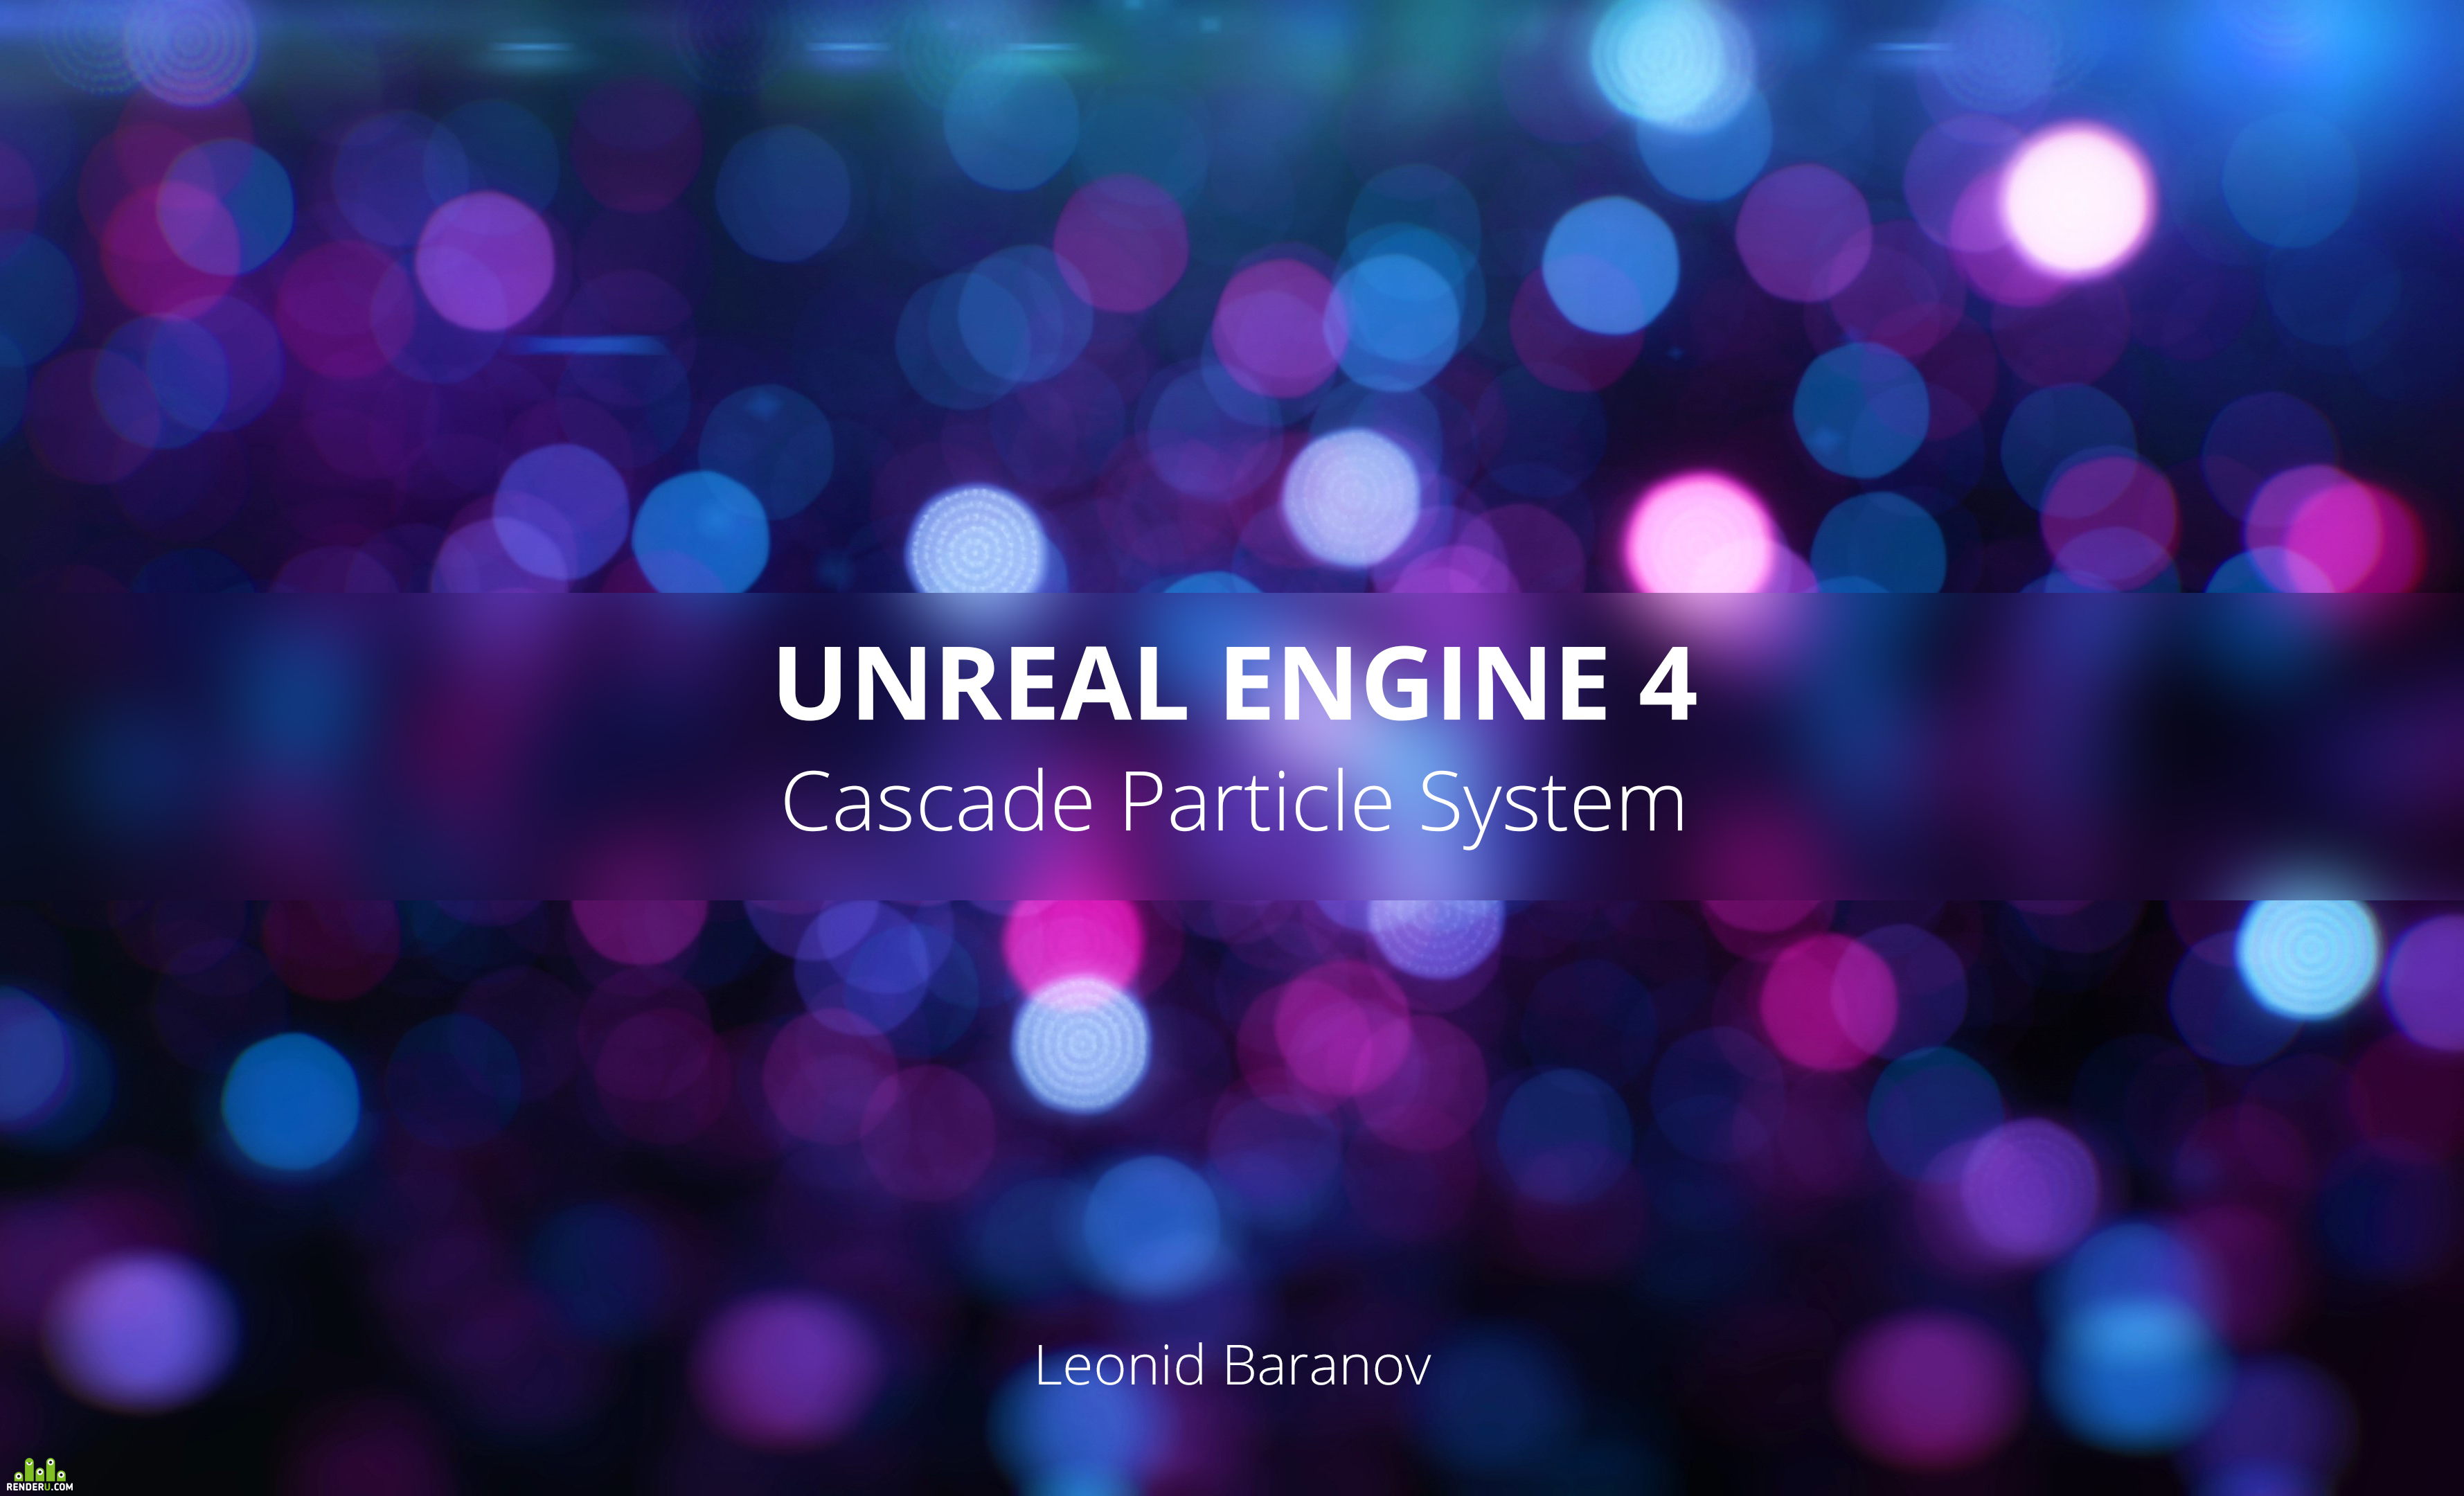 preview Unreal Engine 4 - Cascade Particle System (Realtime render)